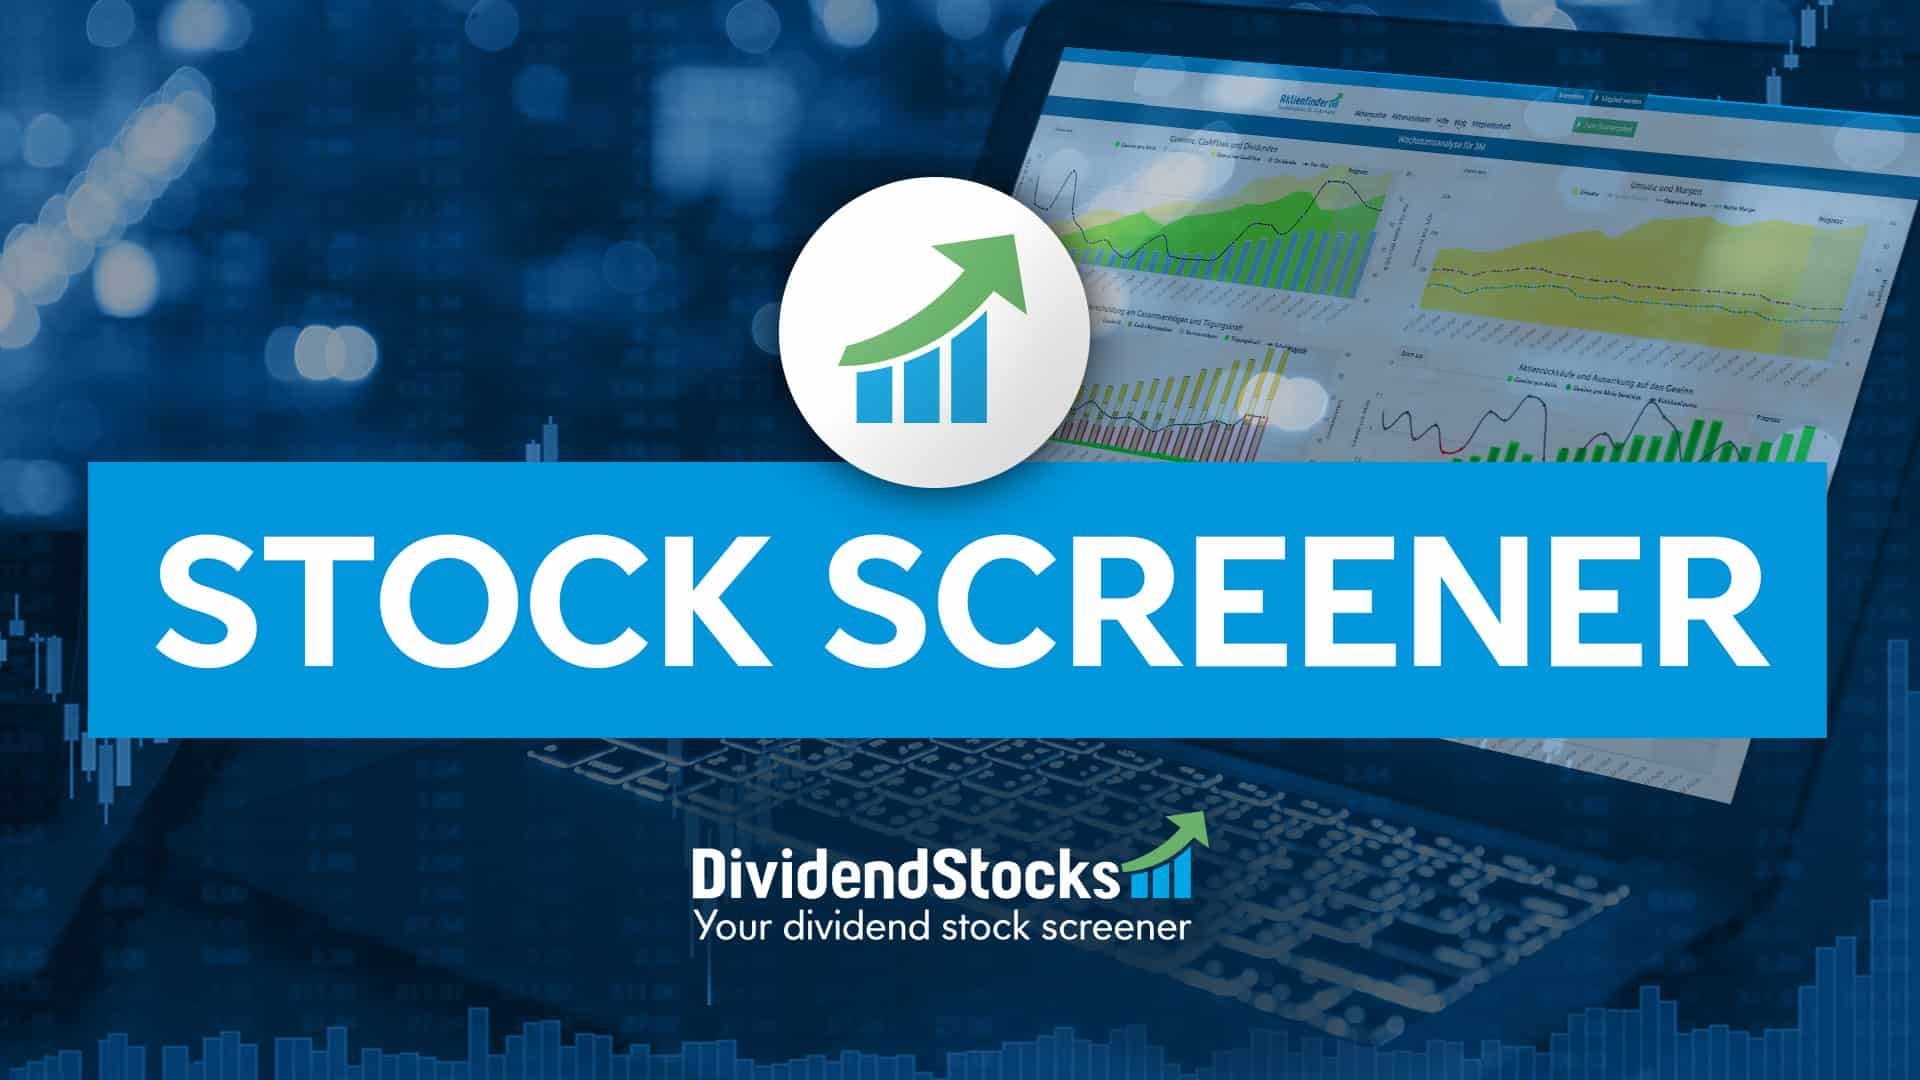 Dividend calendar covering more than 850 of the most